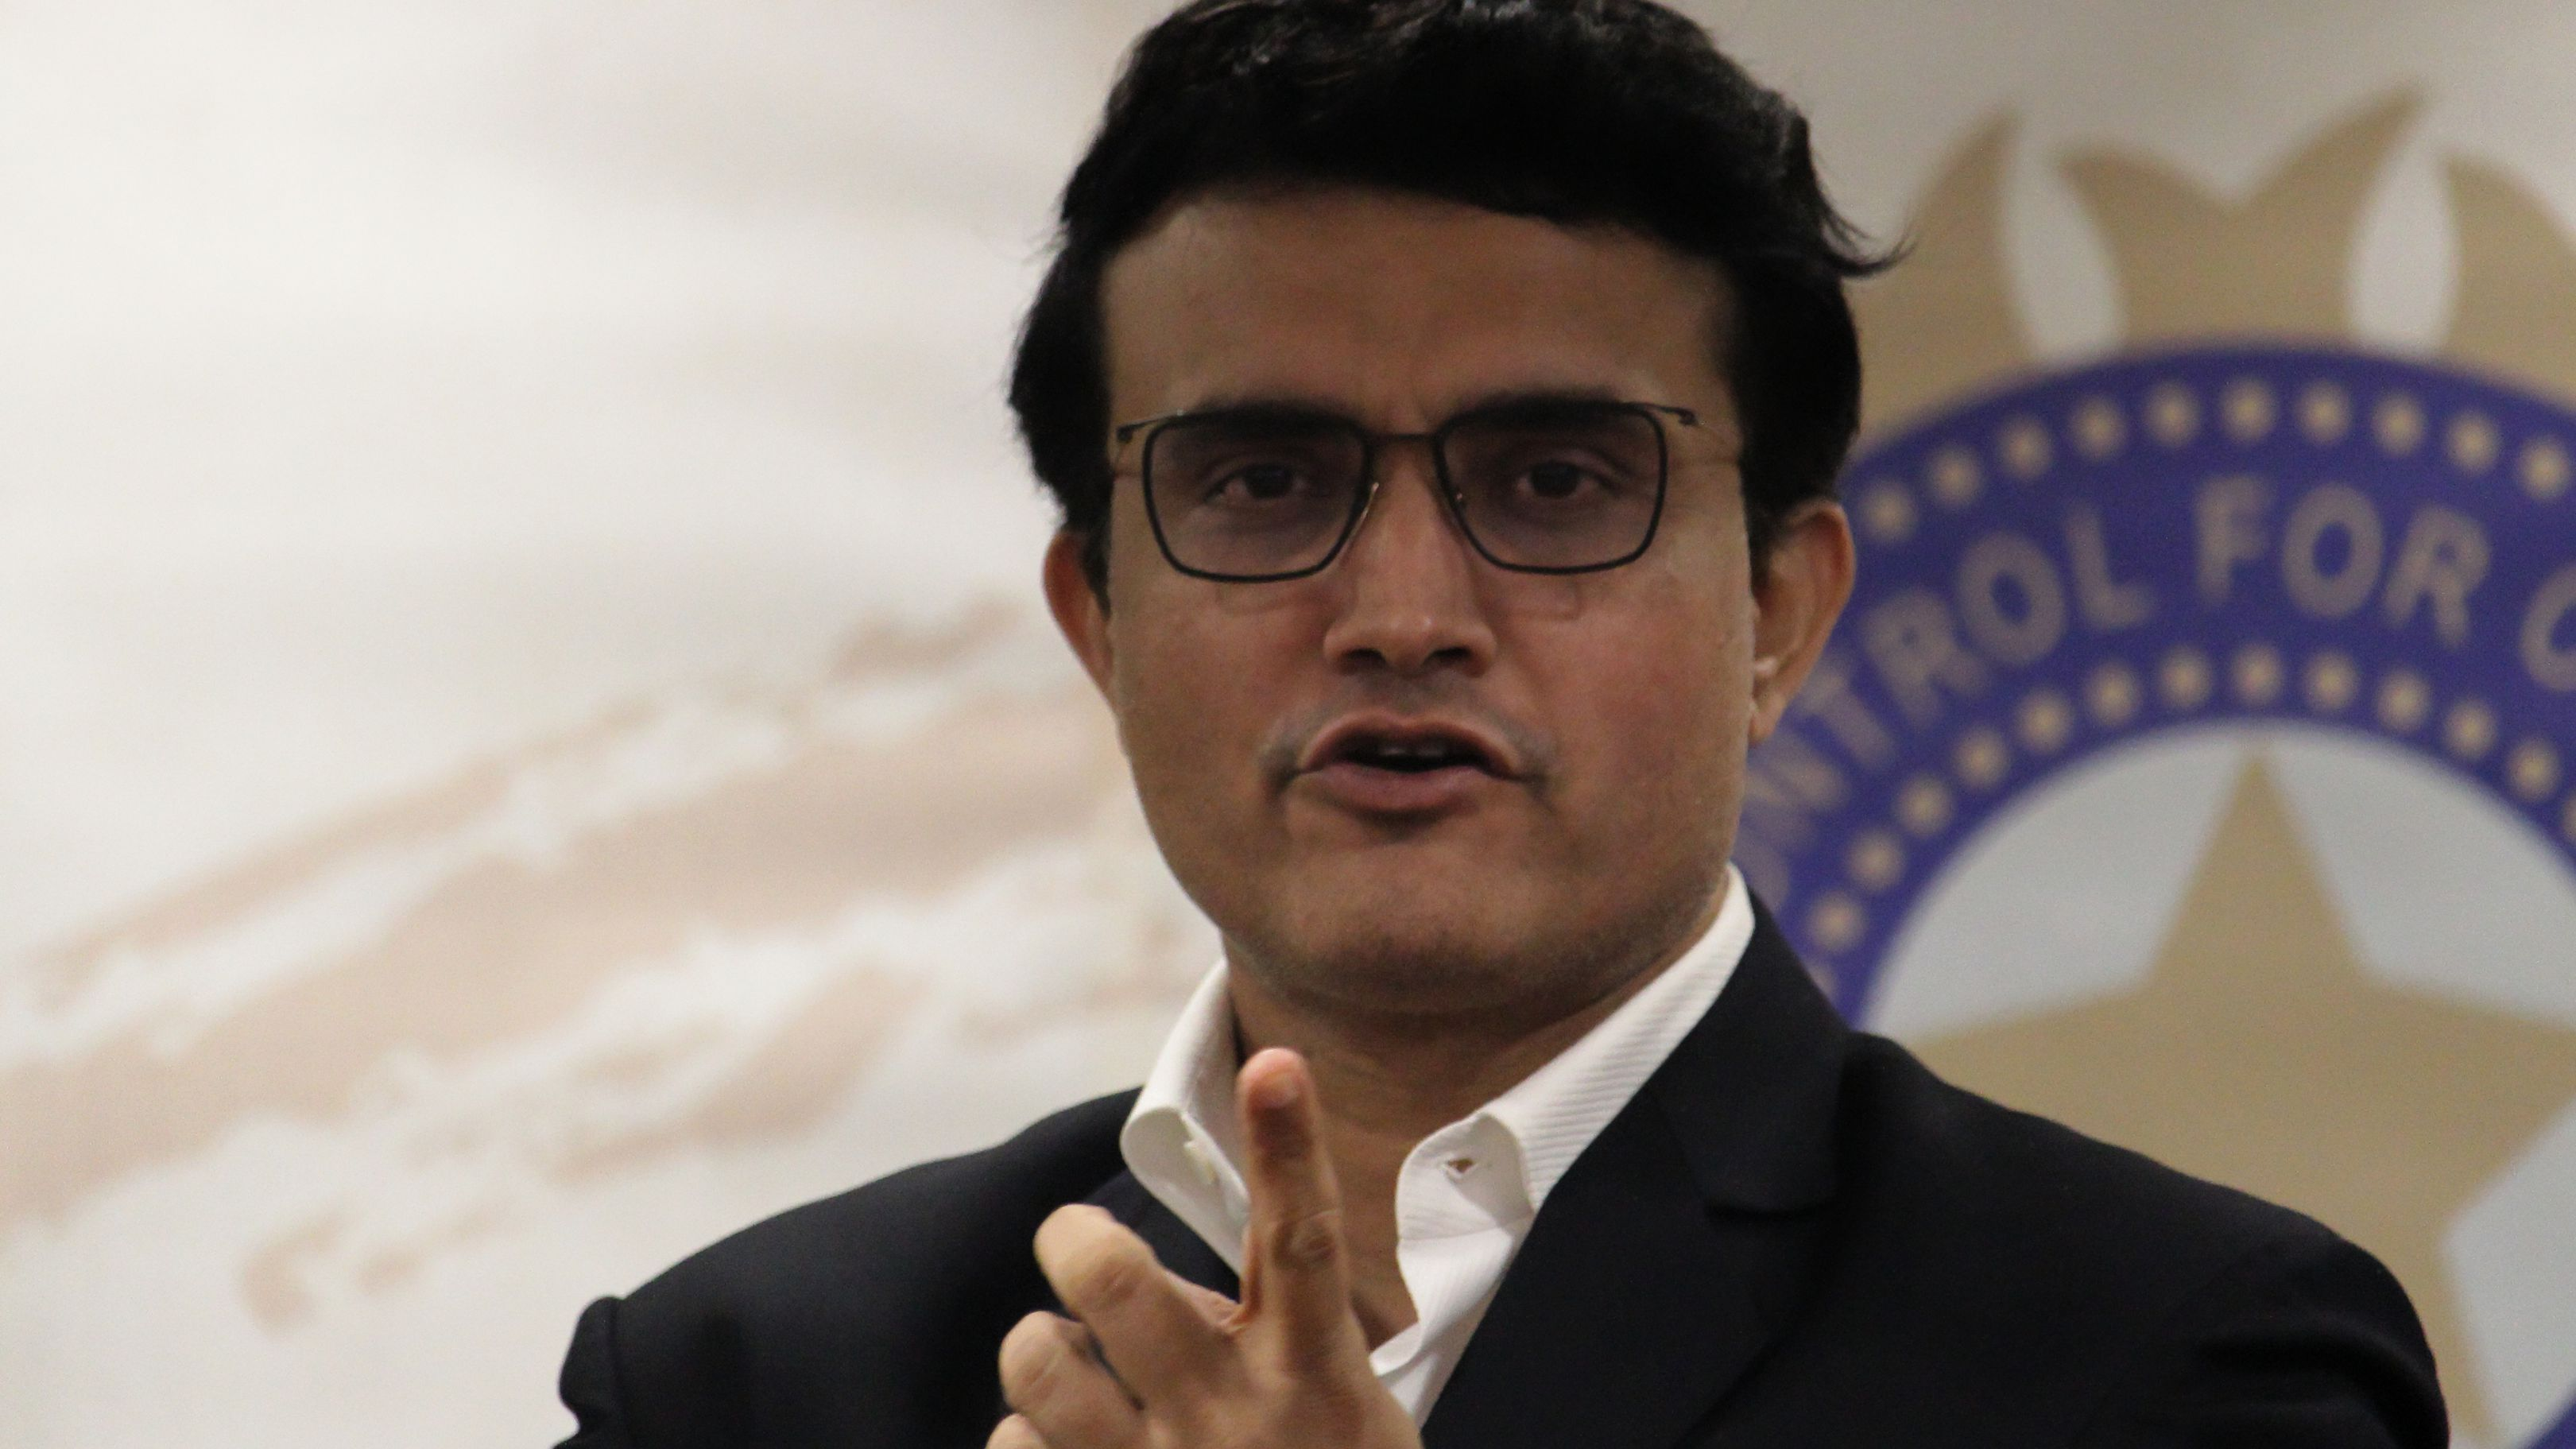 Former Indian cricketer Sourav Ganguly reacts during a press conference.